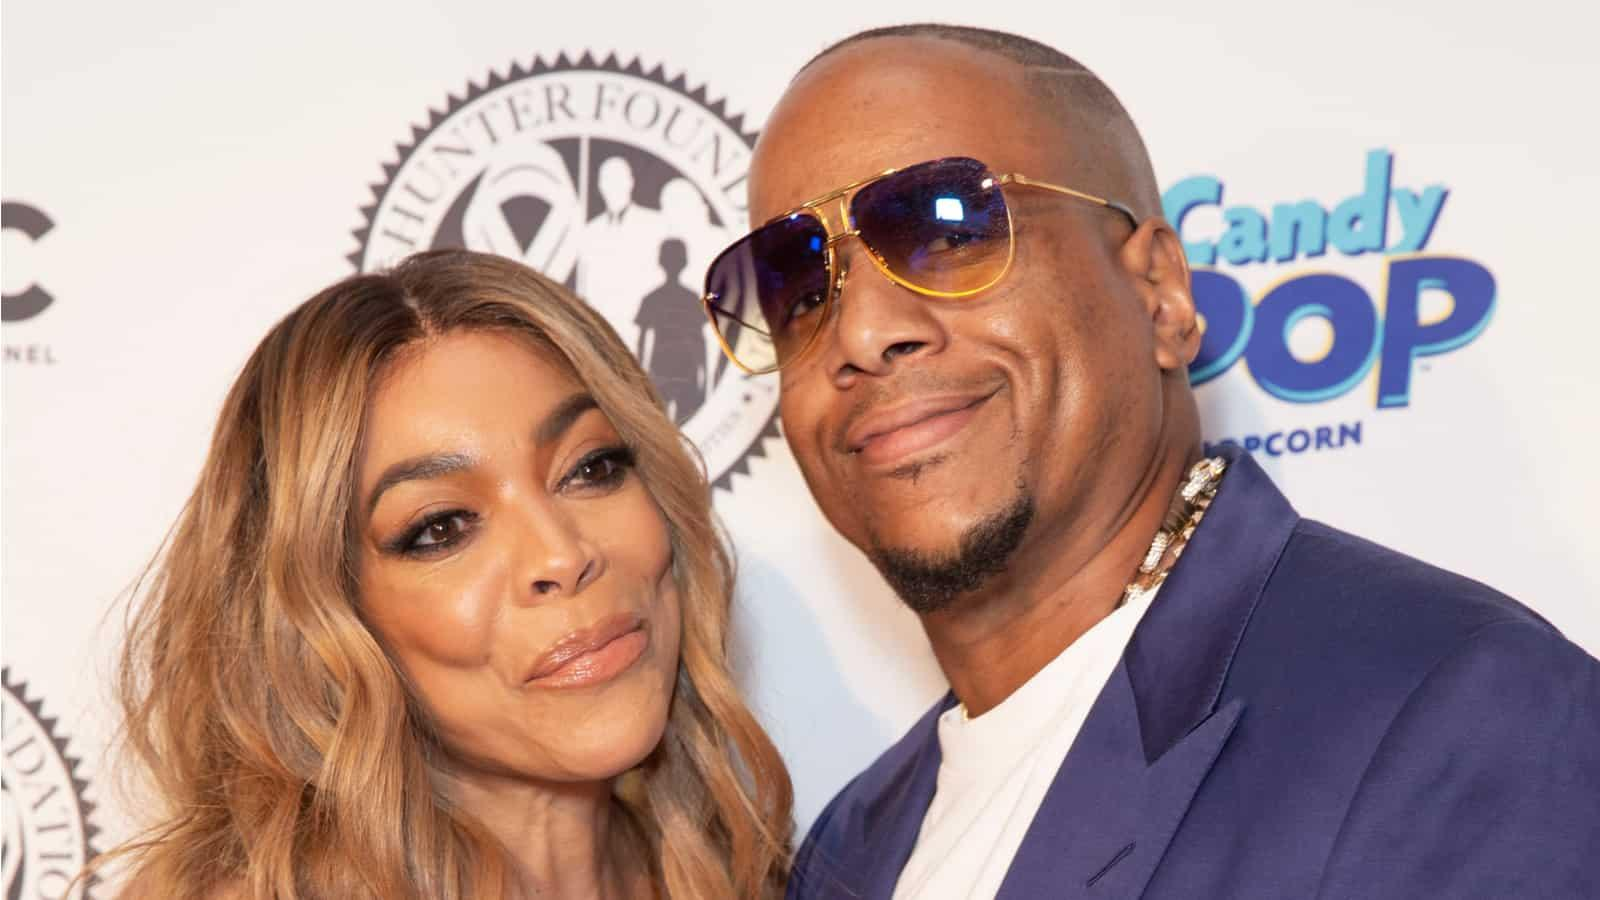 Wendy Williams Confirms Ex-Husband Kevin Hunter Has A Daughter